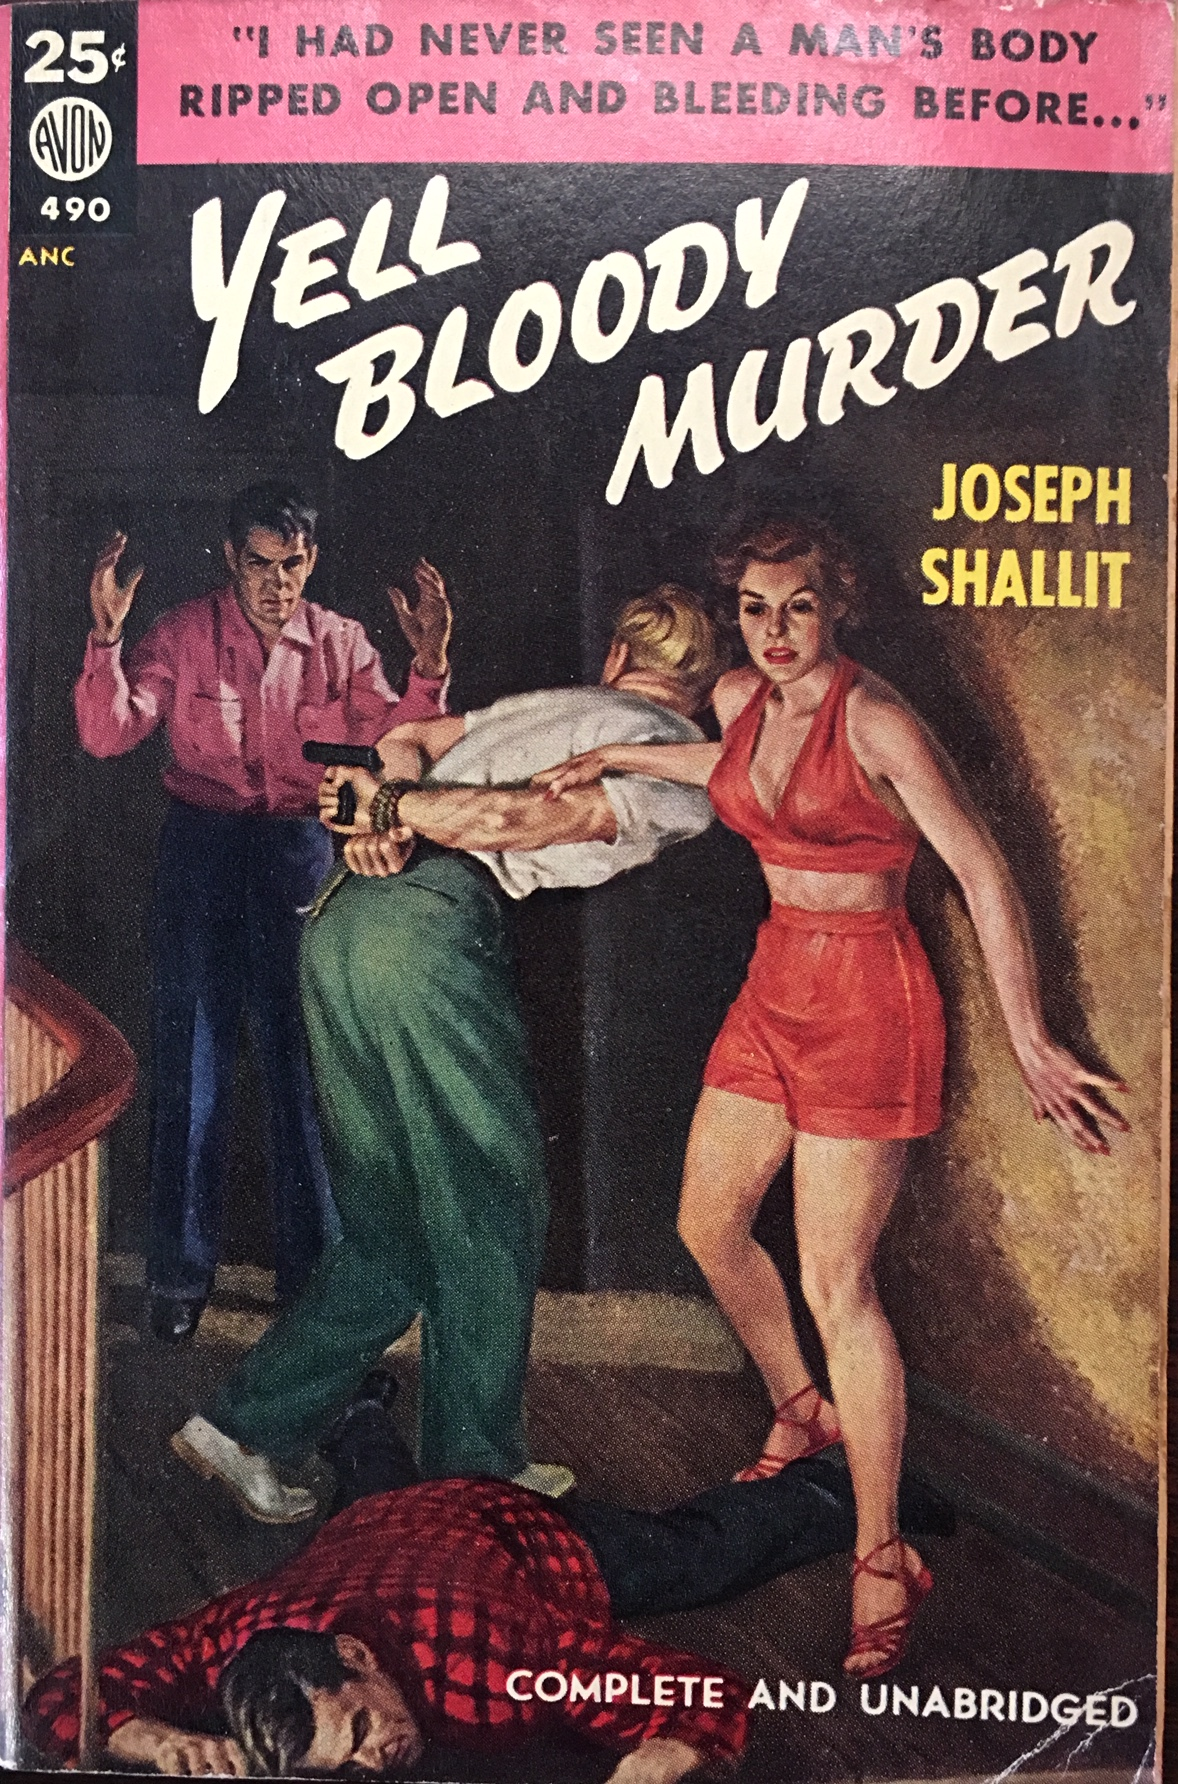 Image for Yell Bloody Murder (Avon 490)